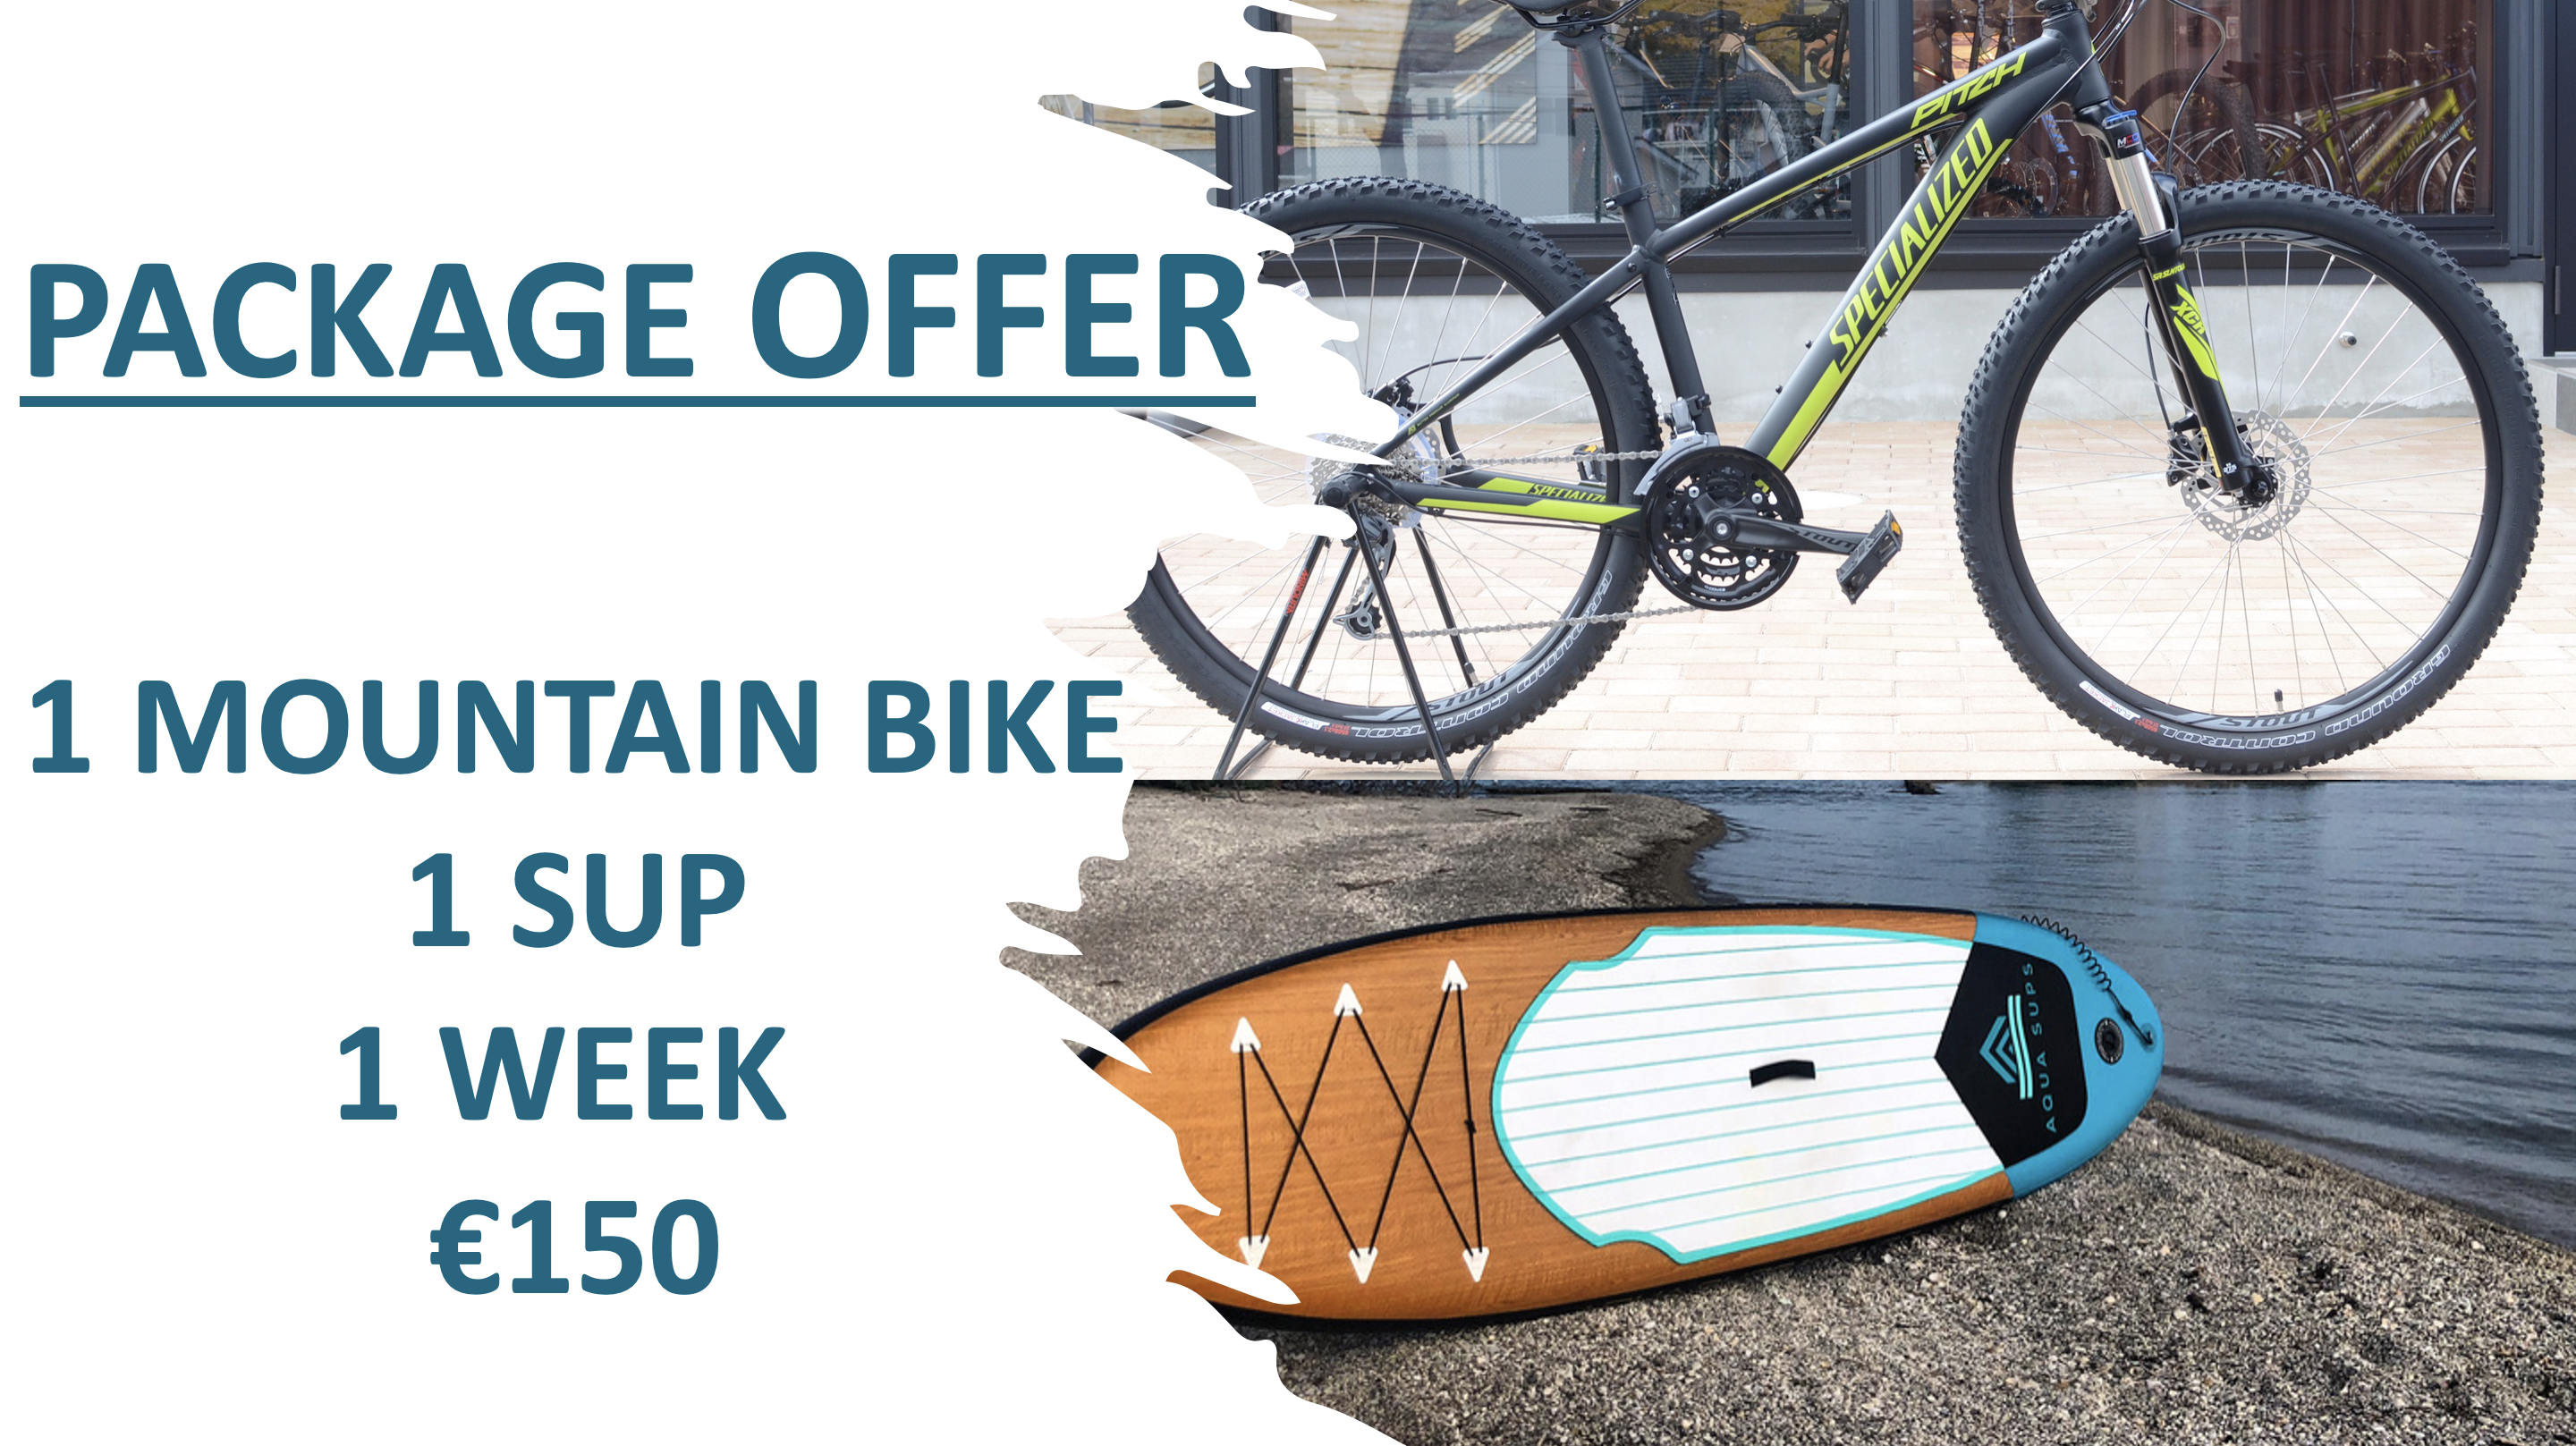 package offer